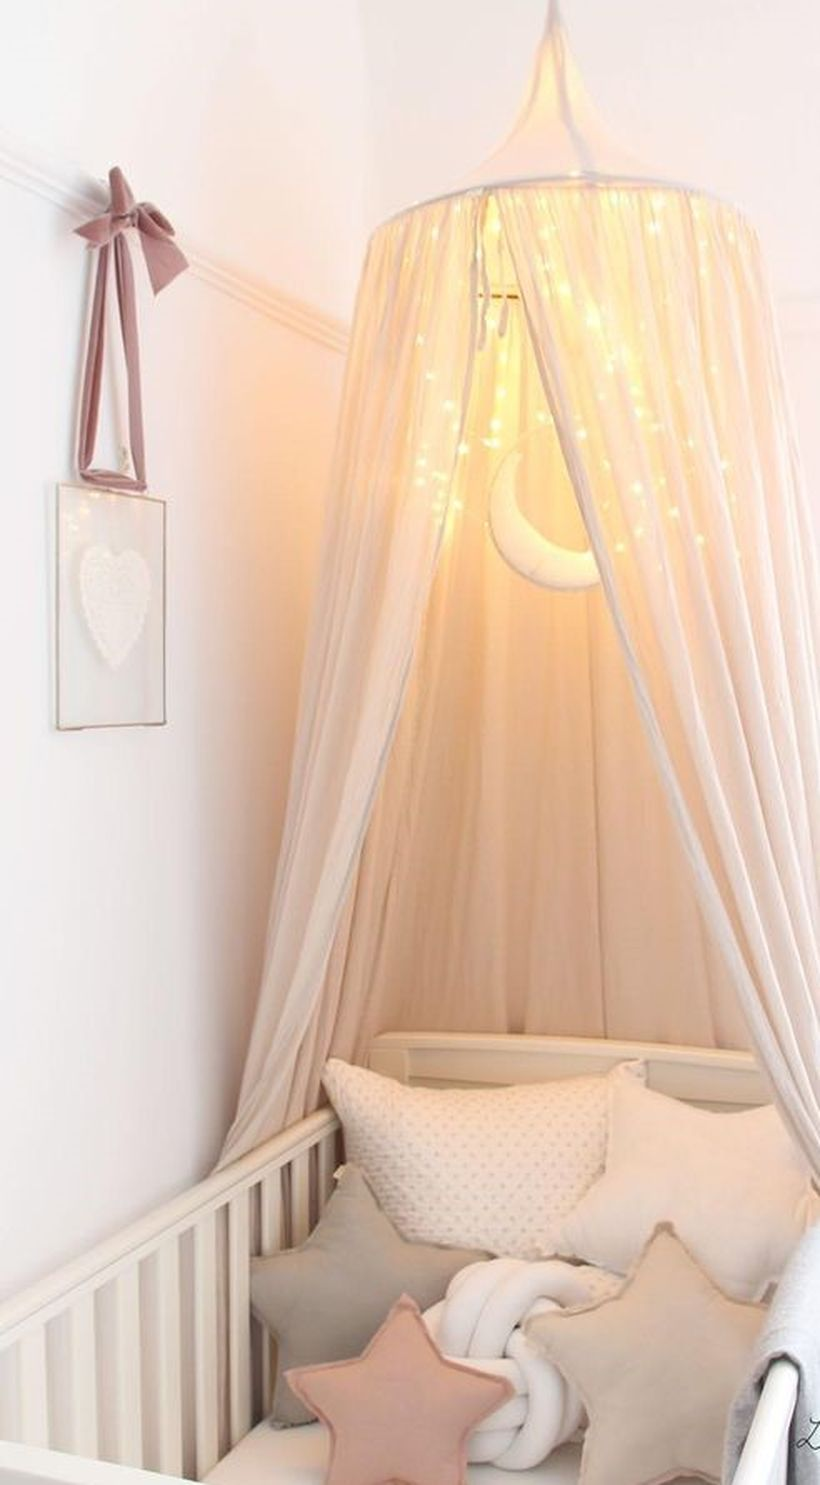 White-dreamy-baby-girls-nursery-room-with-hanging-baby-mosquito-nets-and-decorative-lighting-like-the-moon-and-stars